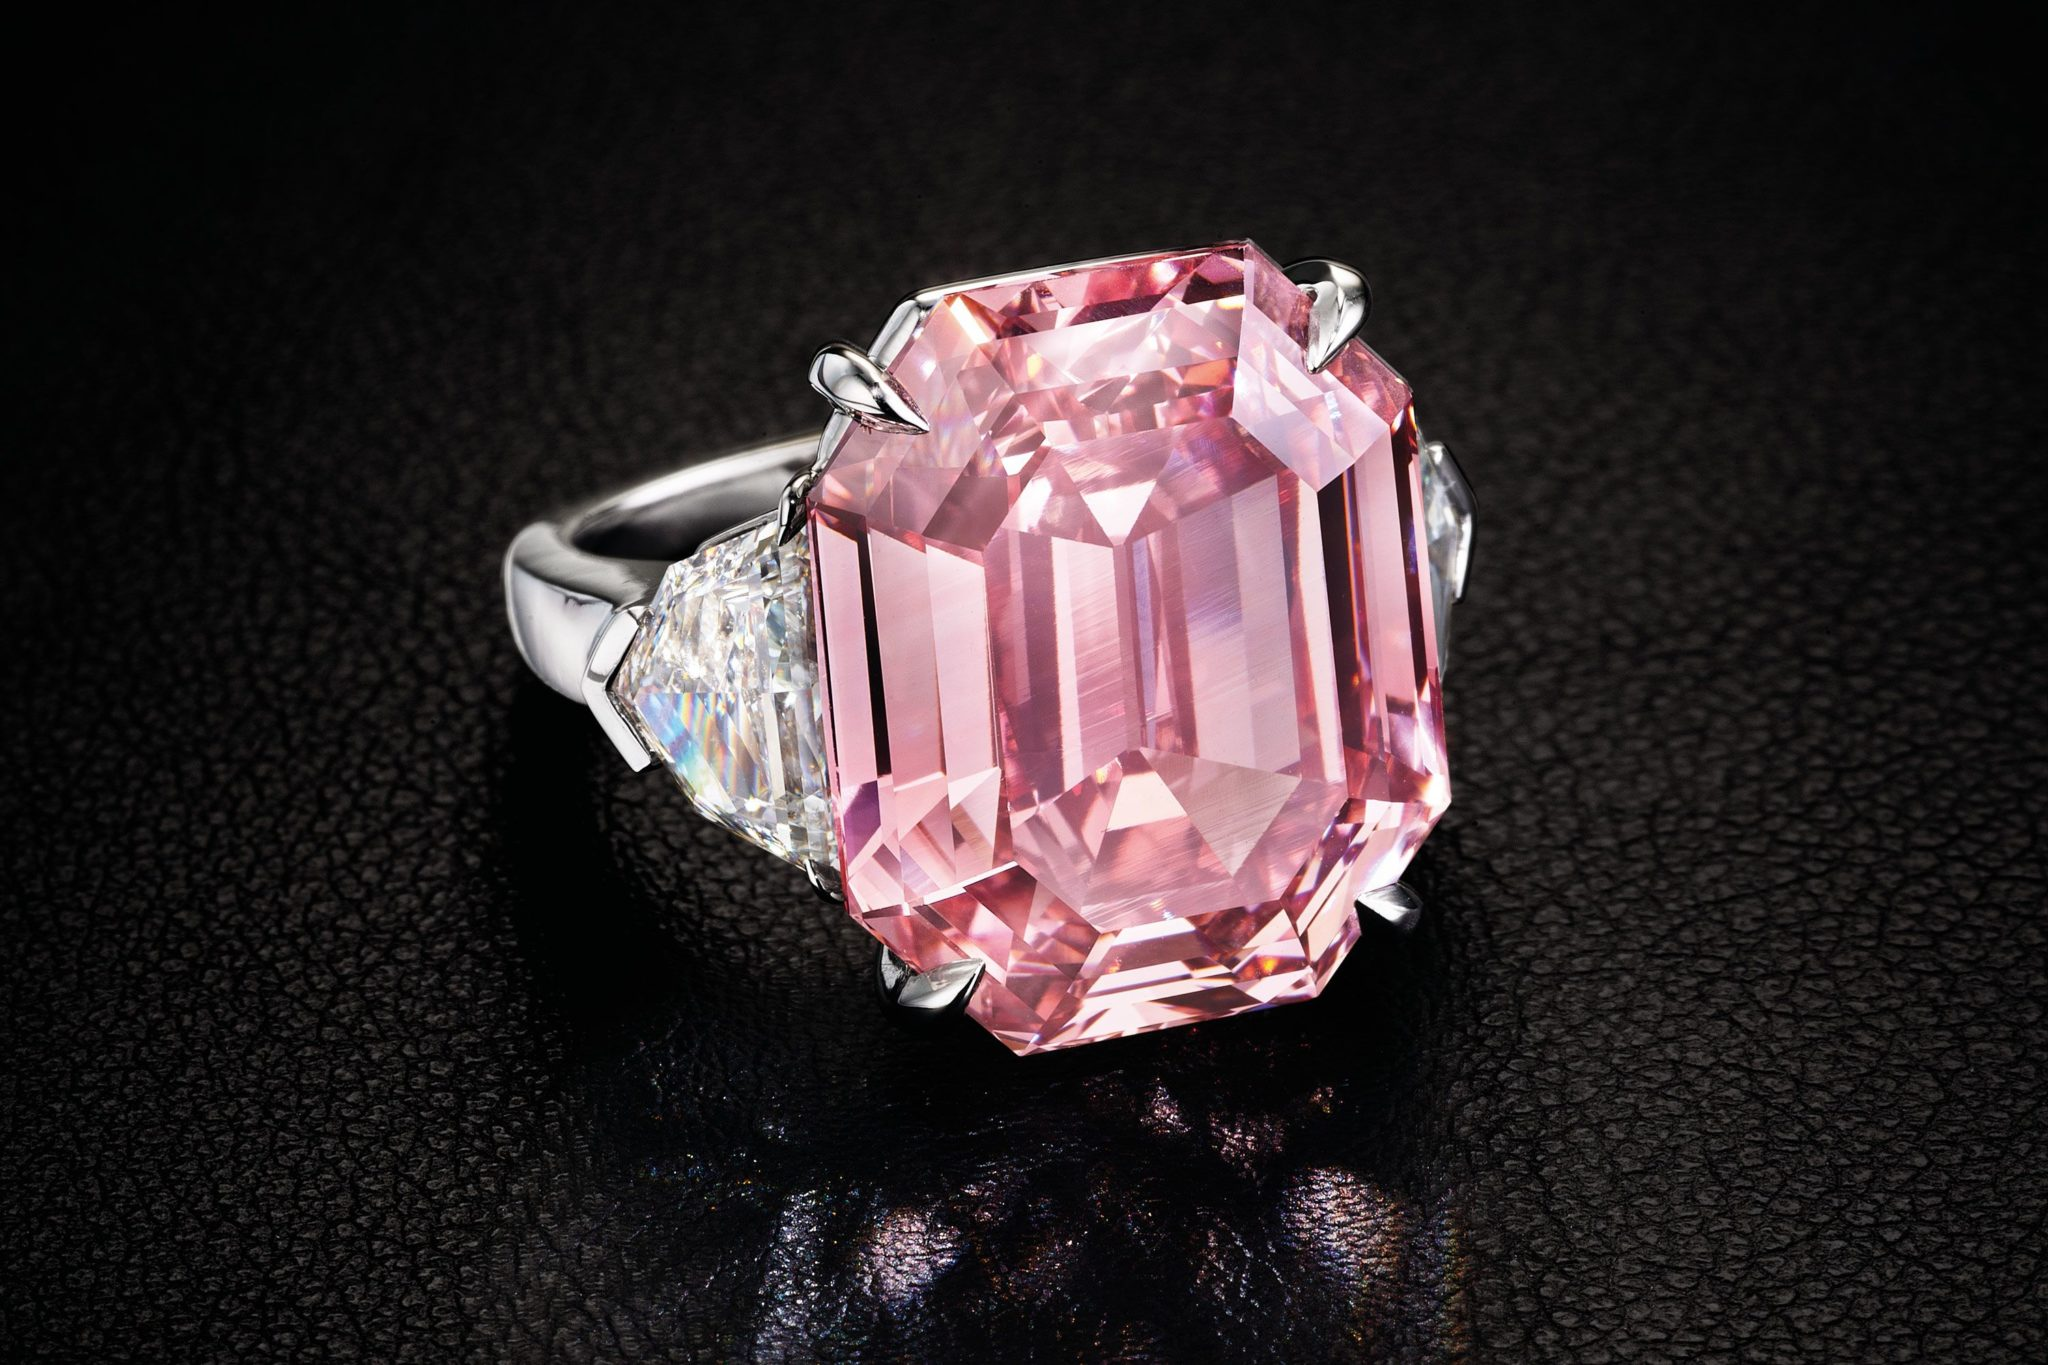 Graff-Pink Top 10 most beautiful diamonds in the world.